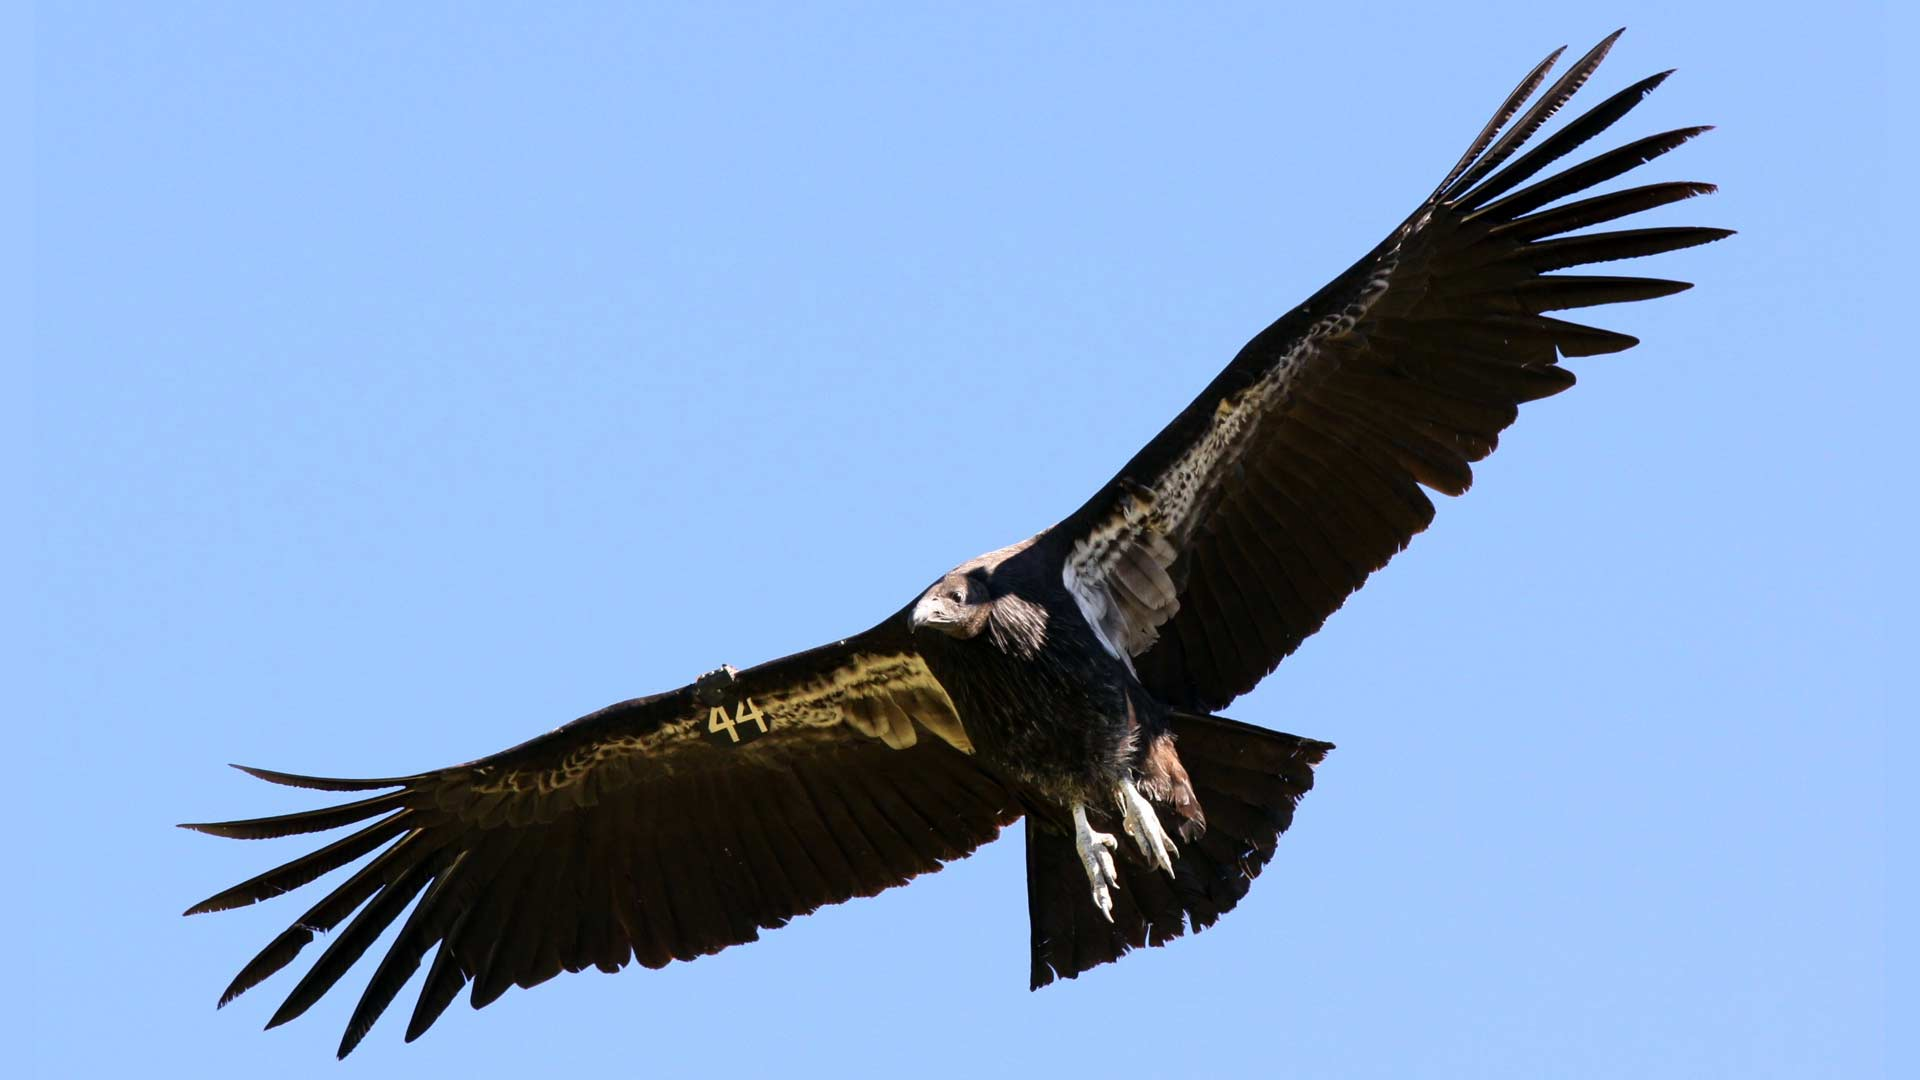 The California condor was on the verge of extinction in the 1980s, but agencies and environmental groups have worked to bring numbers back up, according to the National Park Service.